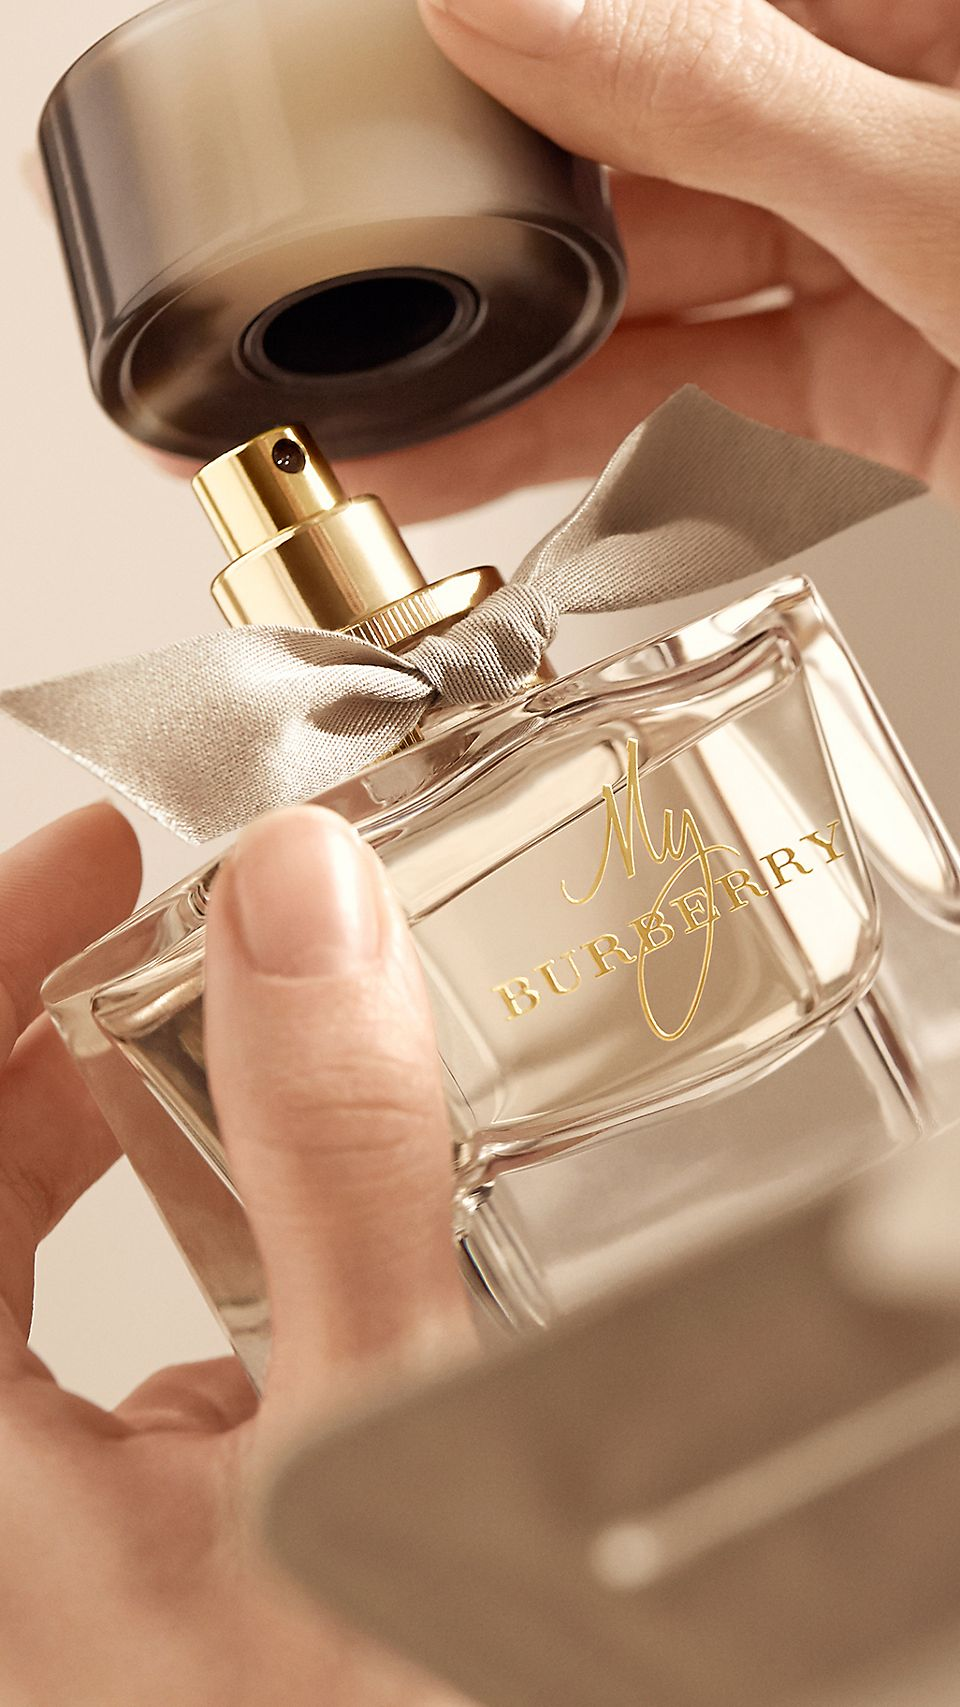 My Burberry  Monogram your bottle